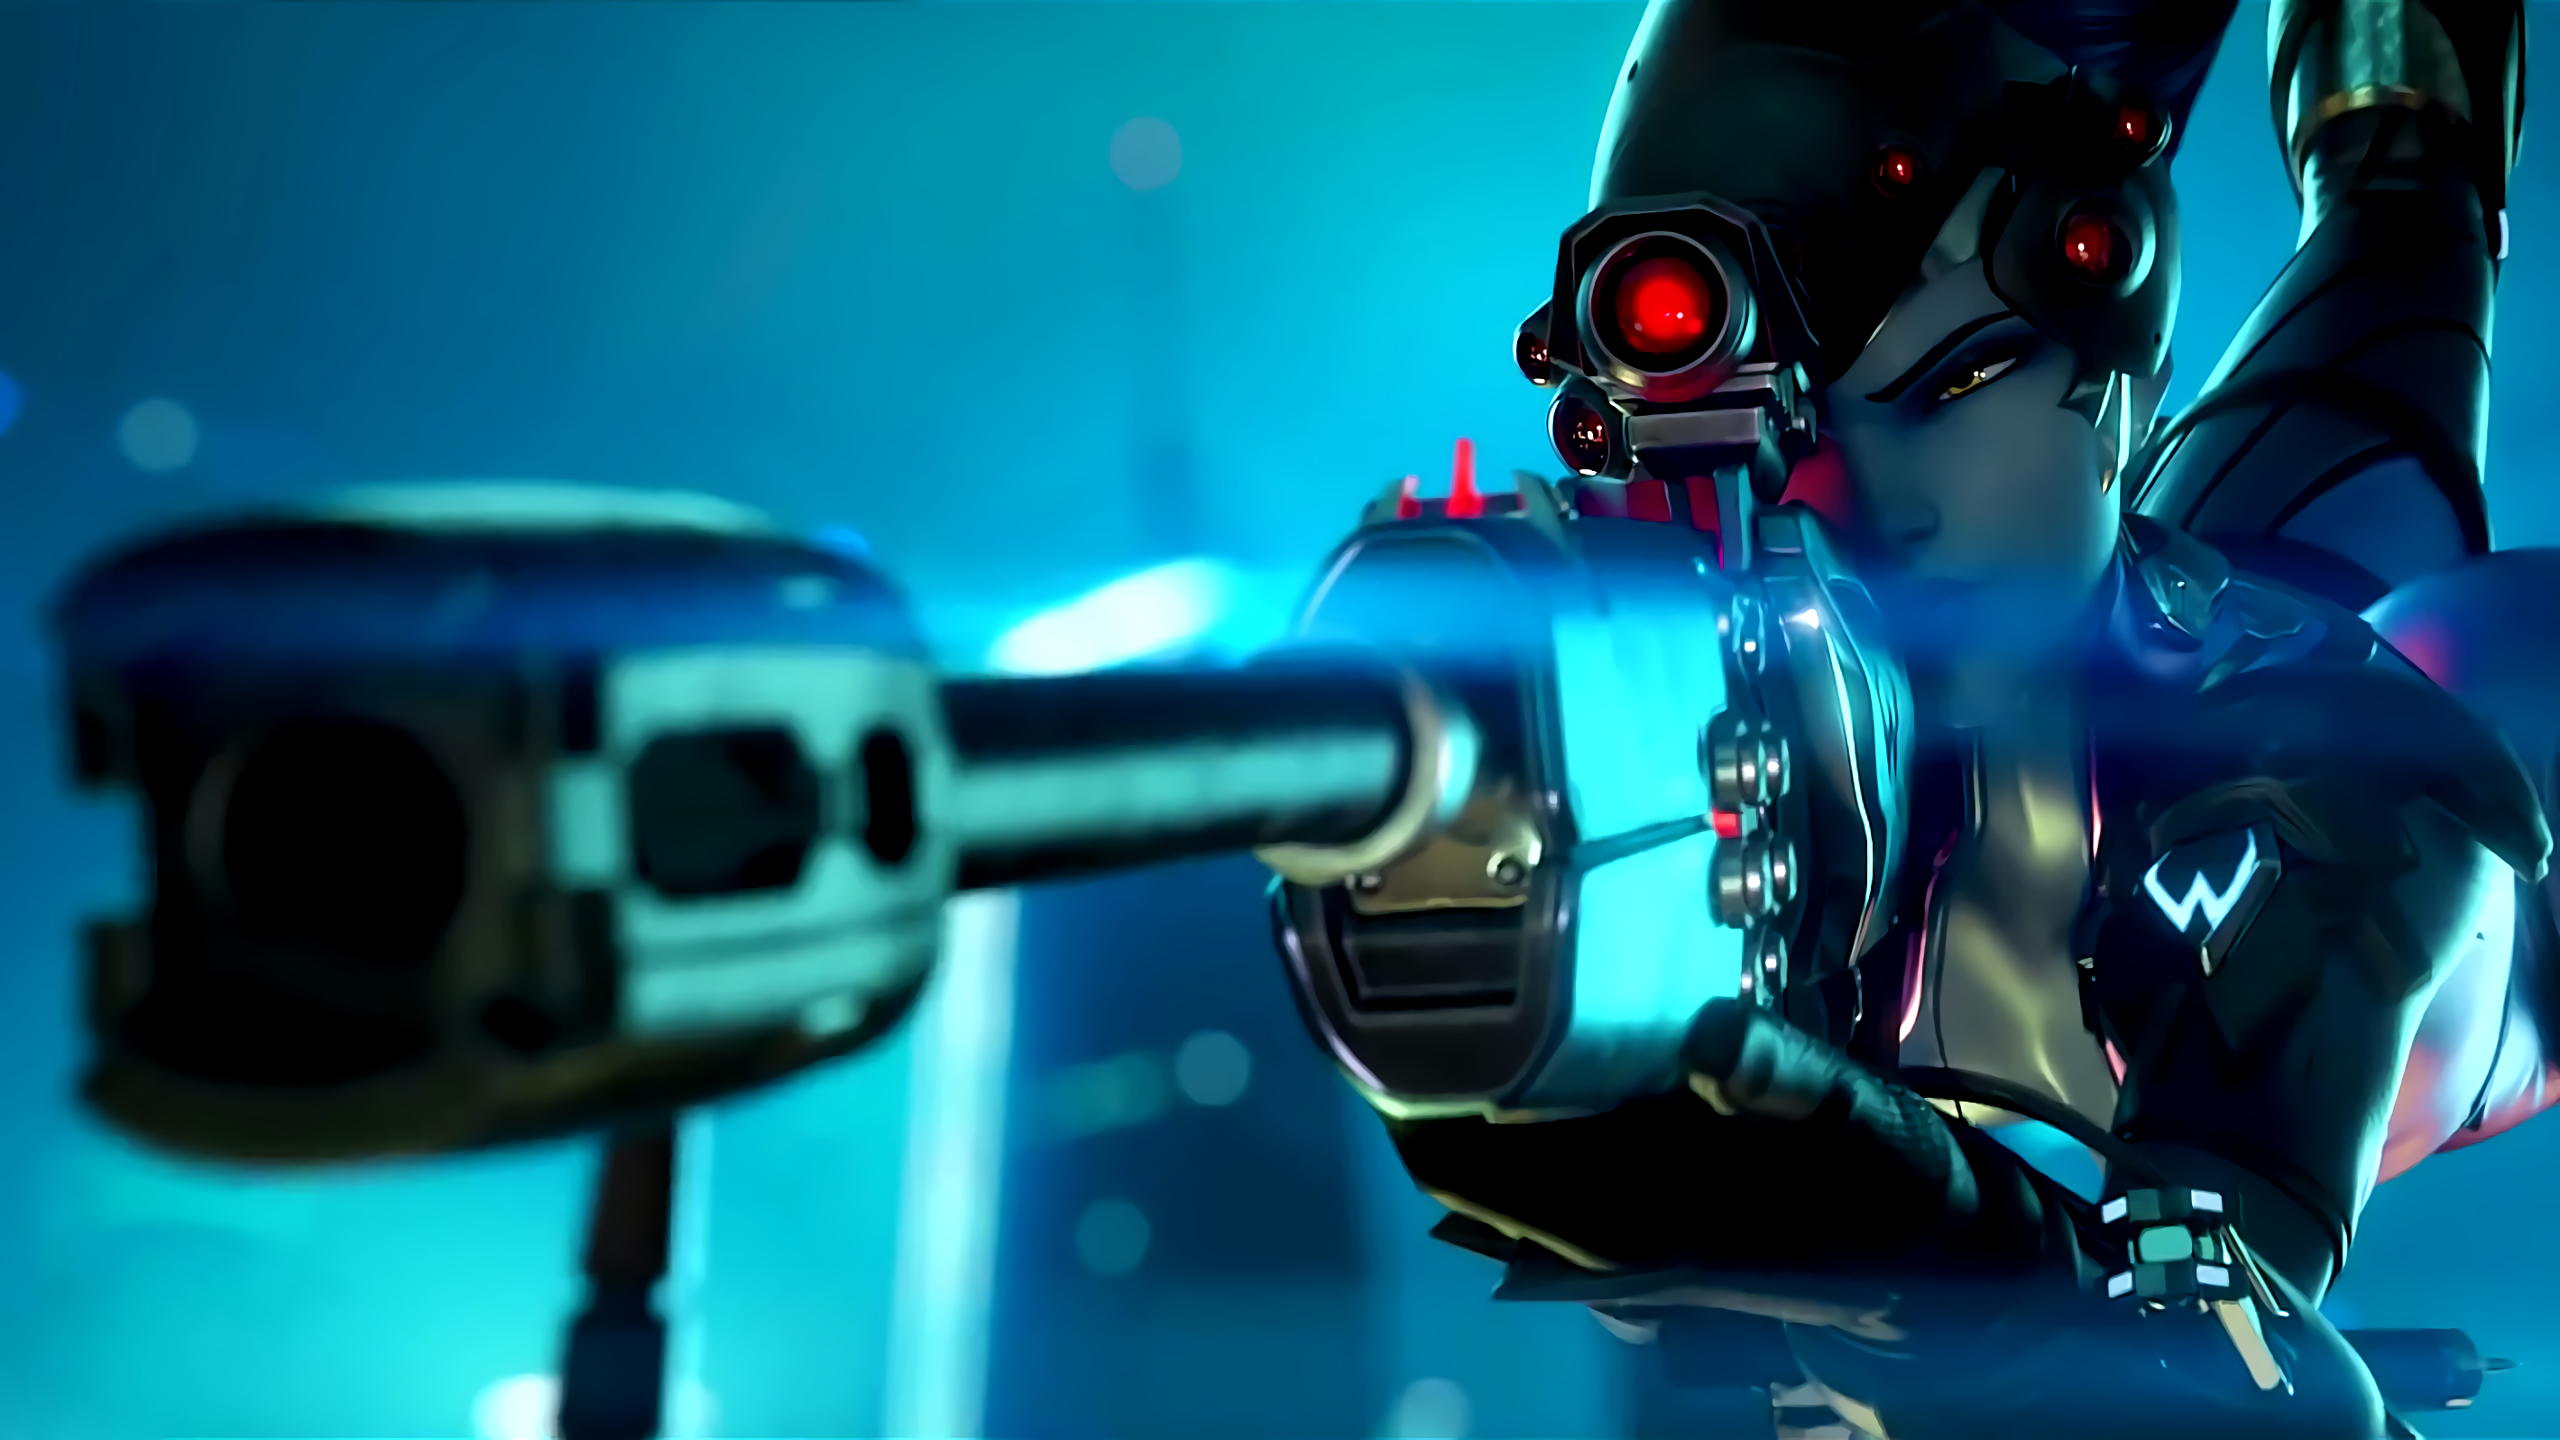 Overwatch Widowmaker HD Wallpaper   iHD Wallpapers 2560x1440